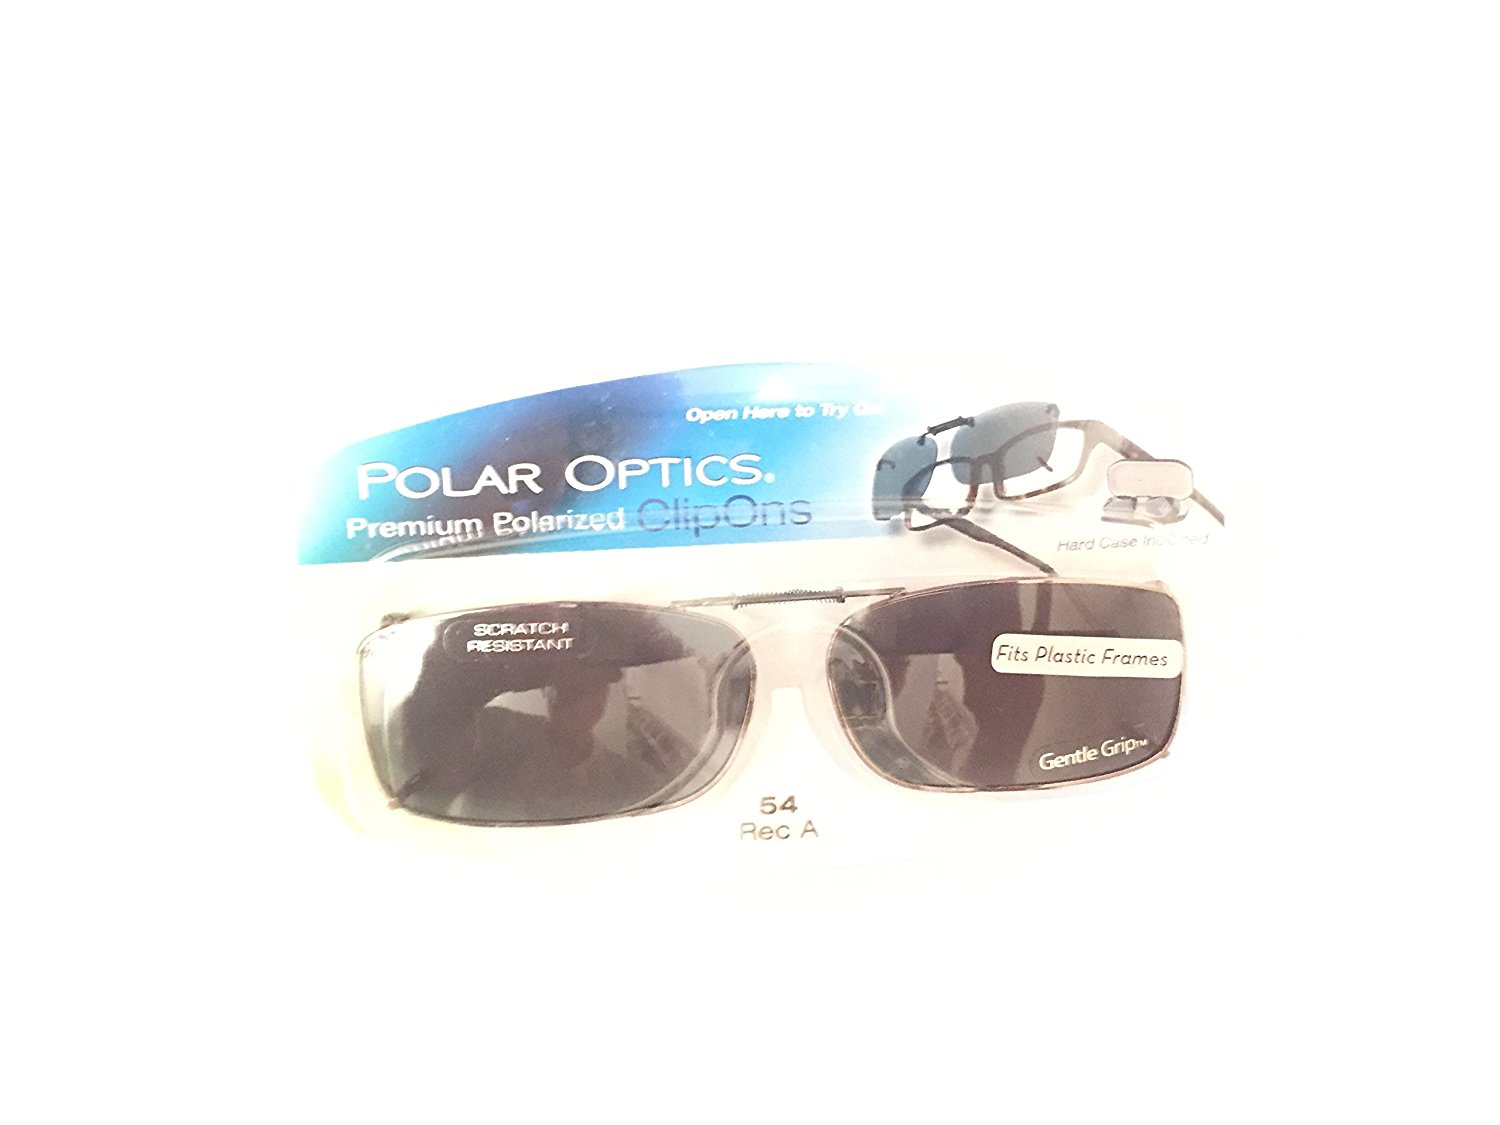 d91f0462 Get Quotations · Polar Optics clip ons premium Polarized hard case incl 54  REC A Sunglasses